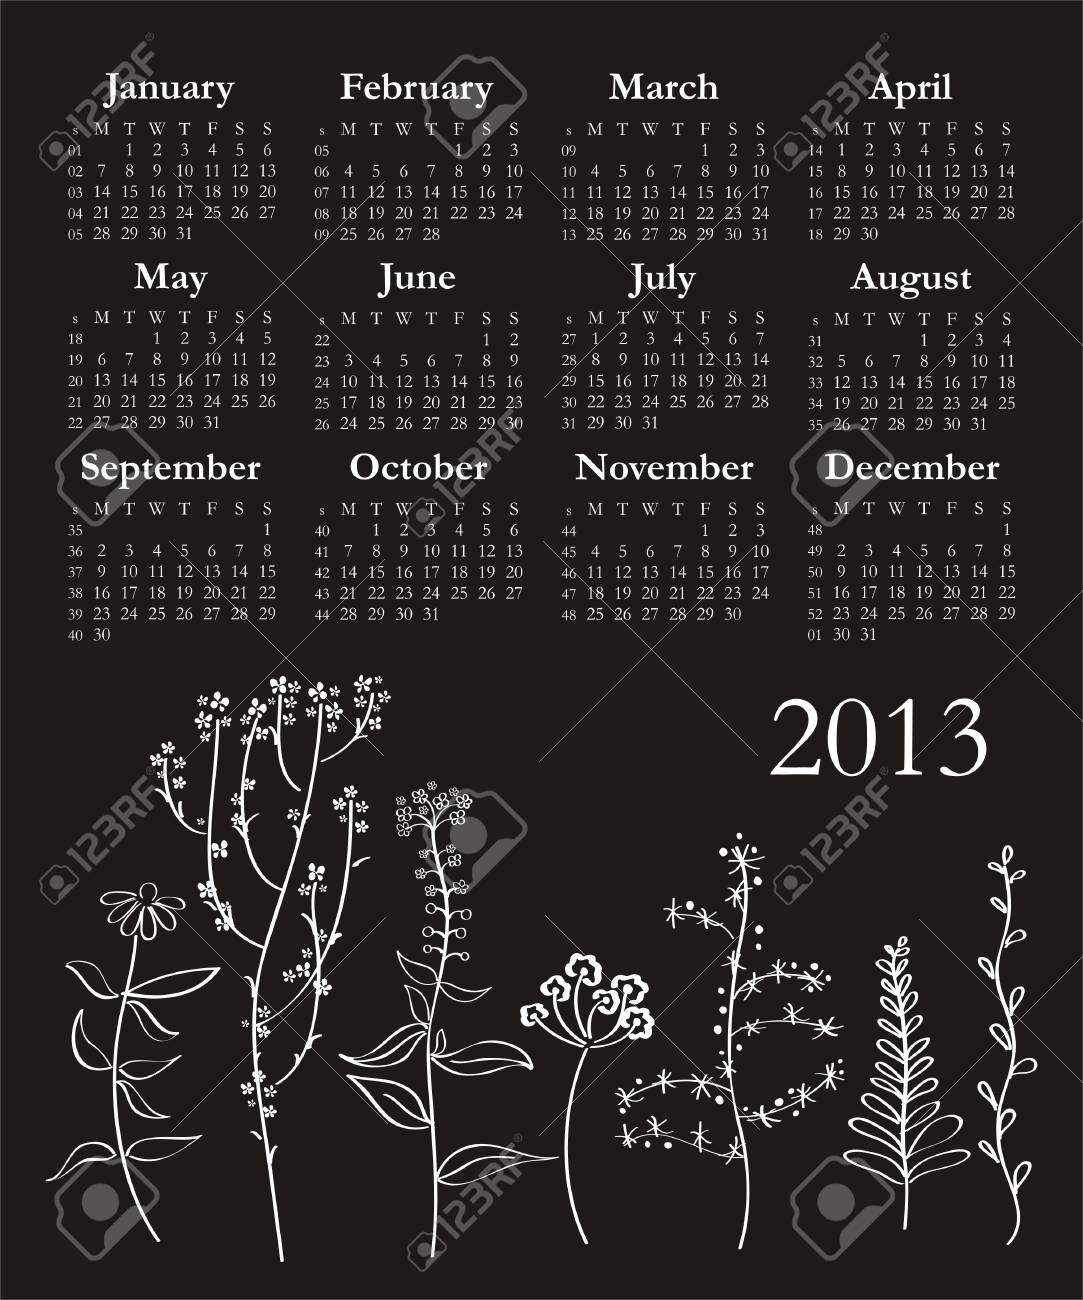 Template for calendar 2013 with flowers Stock Vector - 14807037